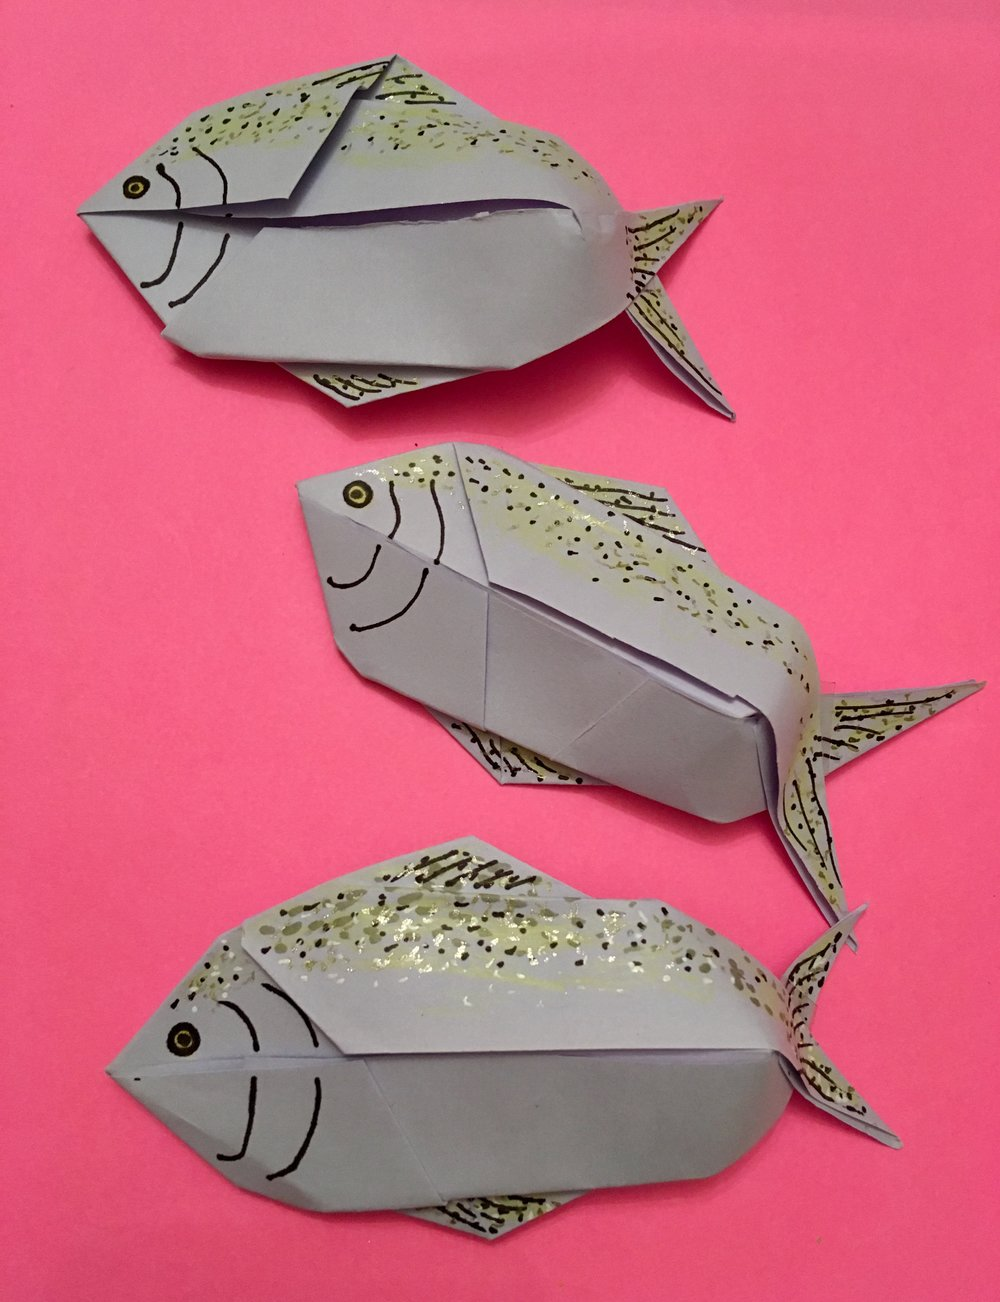 Origami salmons for the Salmon Run project!